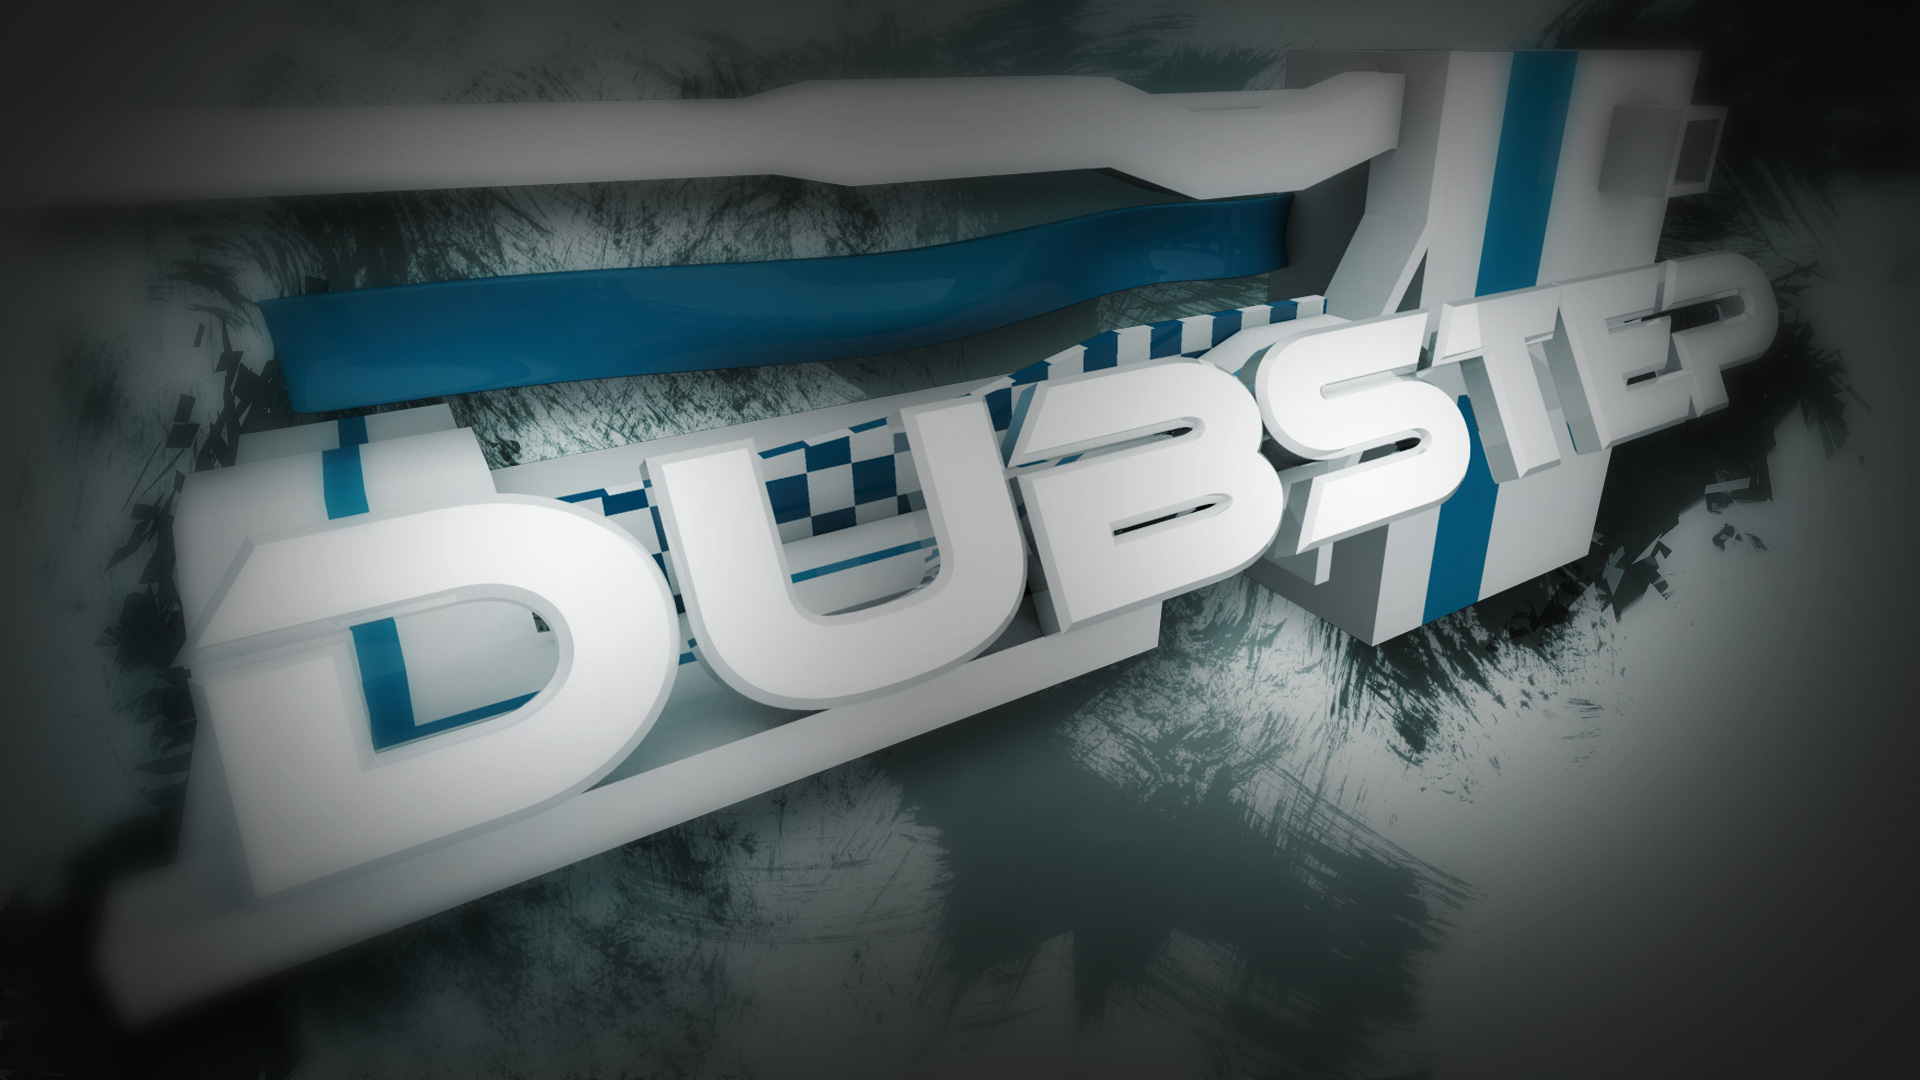 Dubstep 3D Wallpaper By H1s0ka On DeviantArt